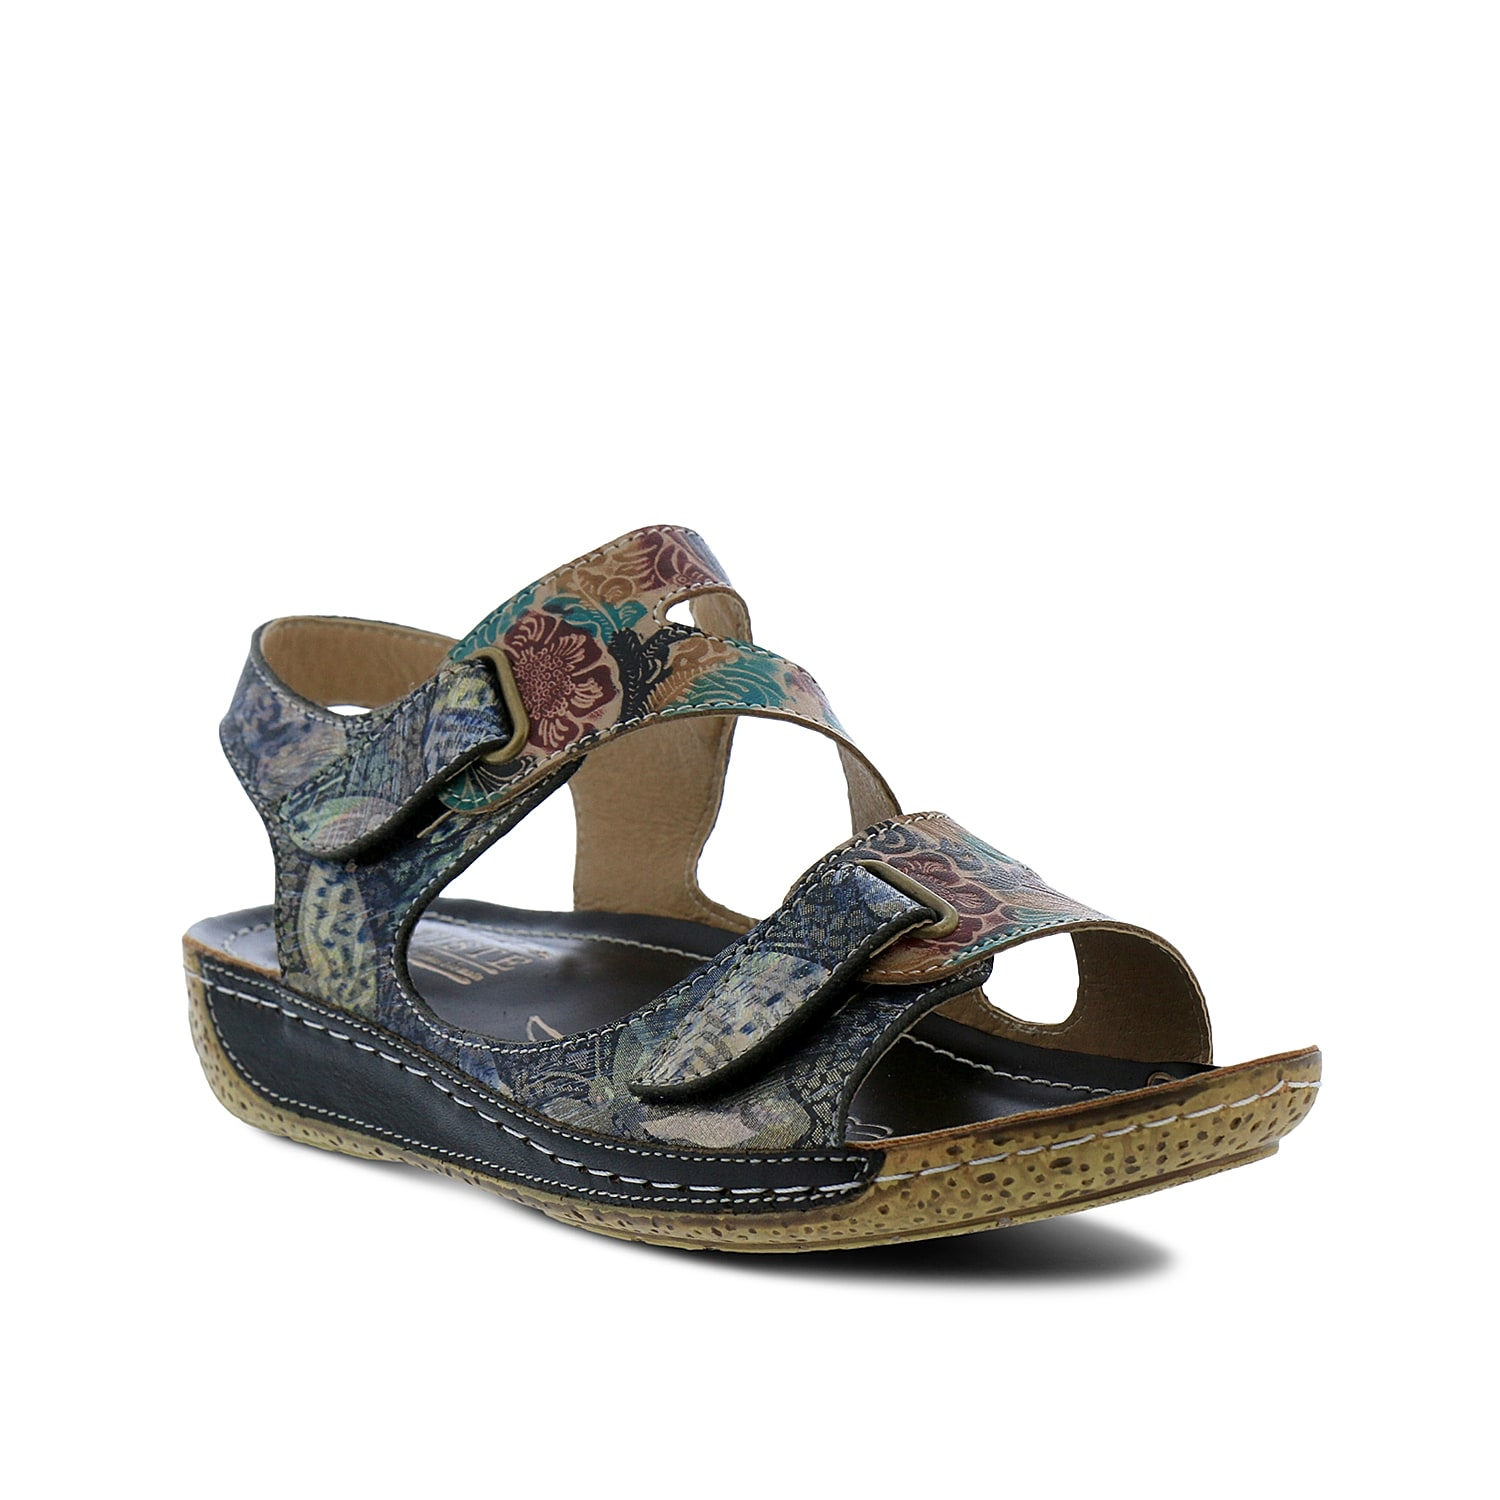 Add artistic appeal to your warm weather looks with the Symphony wedge sandal from L\\\'Artiste by Spring Step. Floral embossing on the strappy upper will be sure to catch eyes.